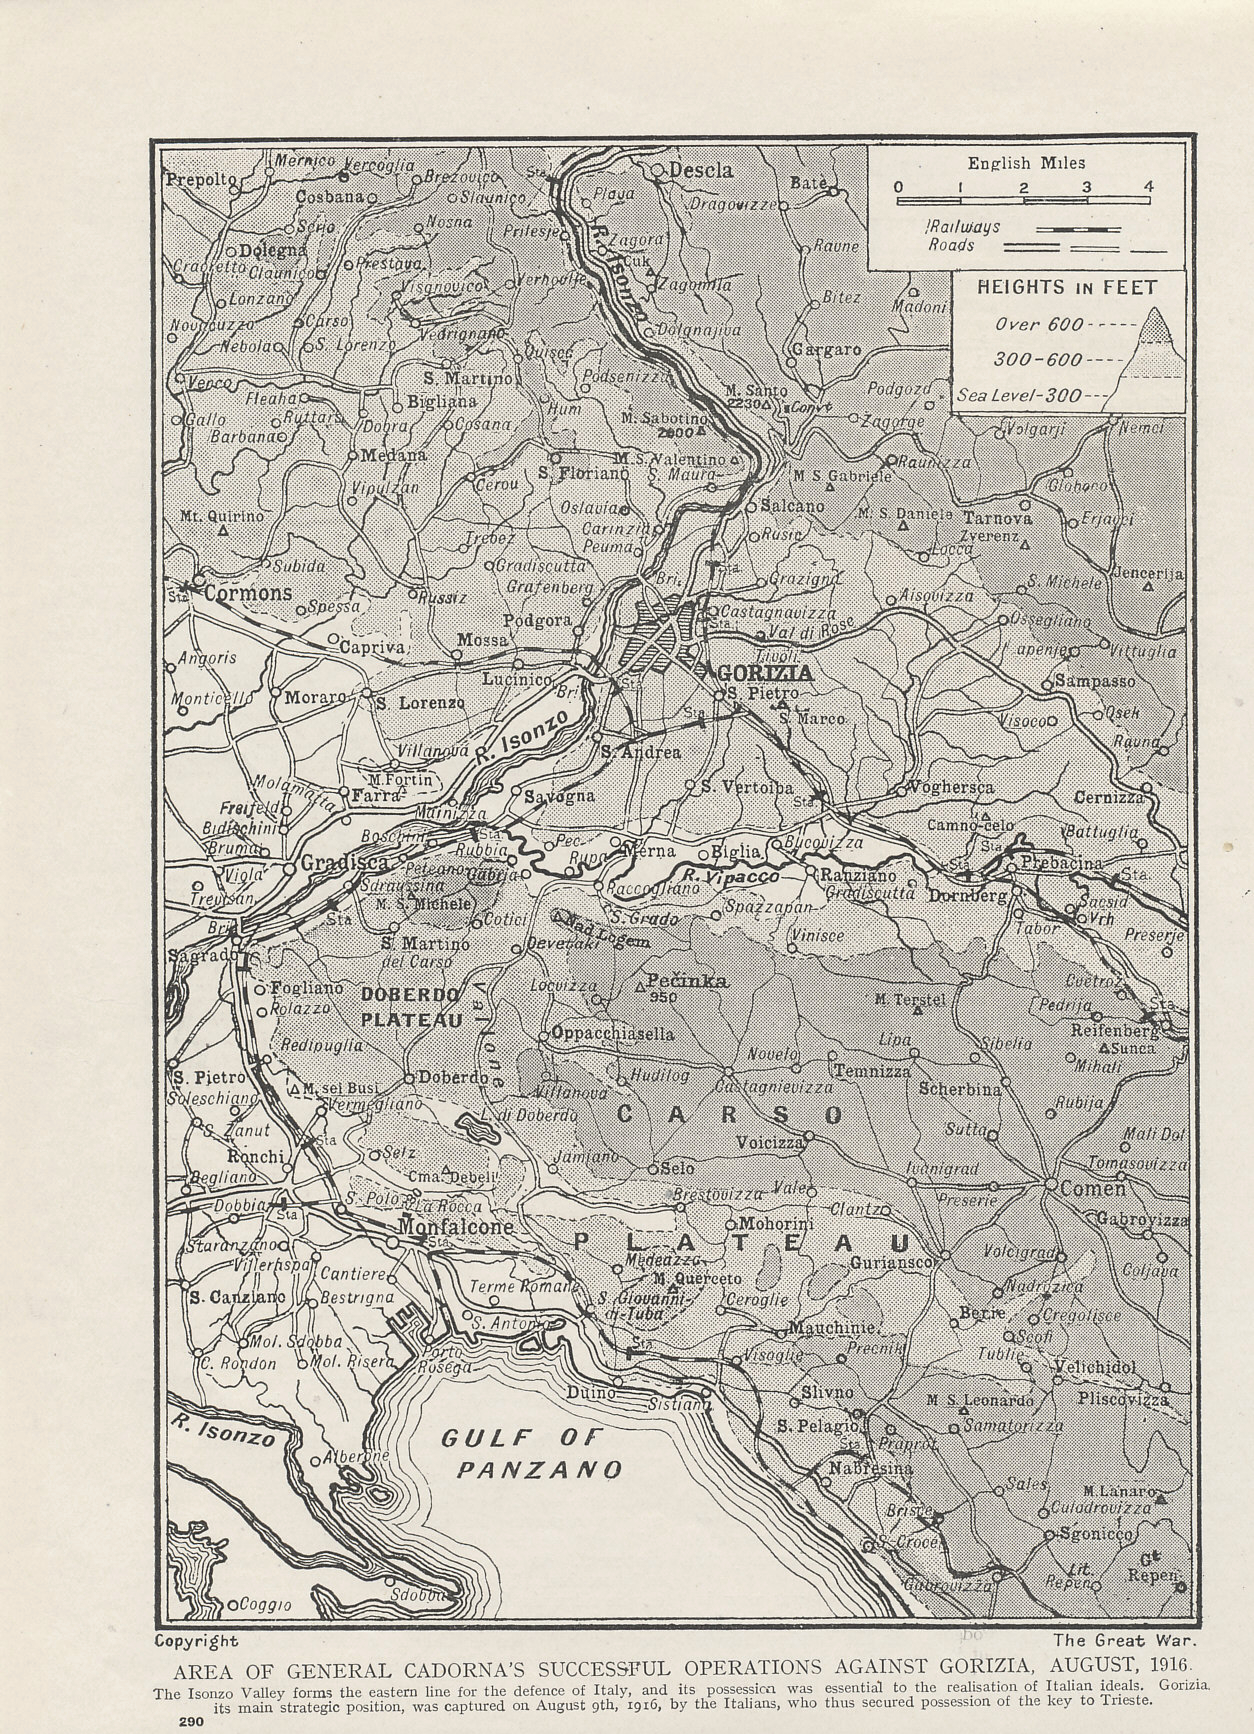 From a series on the Great War, a 1916 map on the the Sixth Battle of the Isonzo, Italian commander Luigi Cadorna's offensive in August of the same year. The Italians crossed much of the Isonzo, and took Gorizia. The Austro-Hungarians continued to hold high ground to the east. 